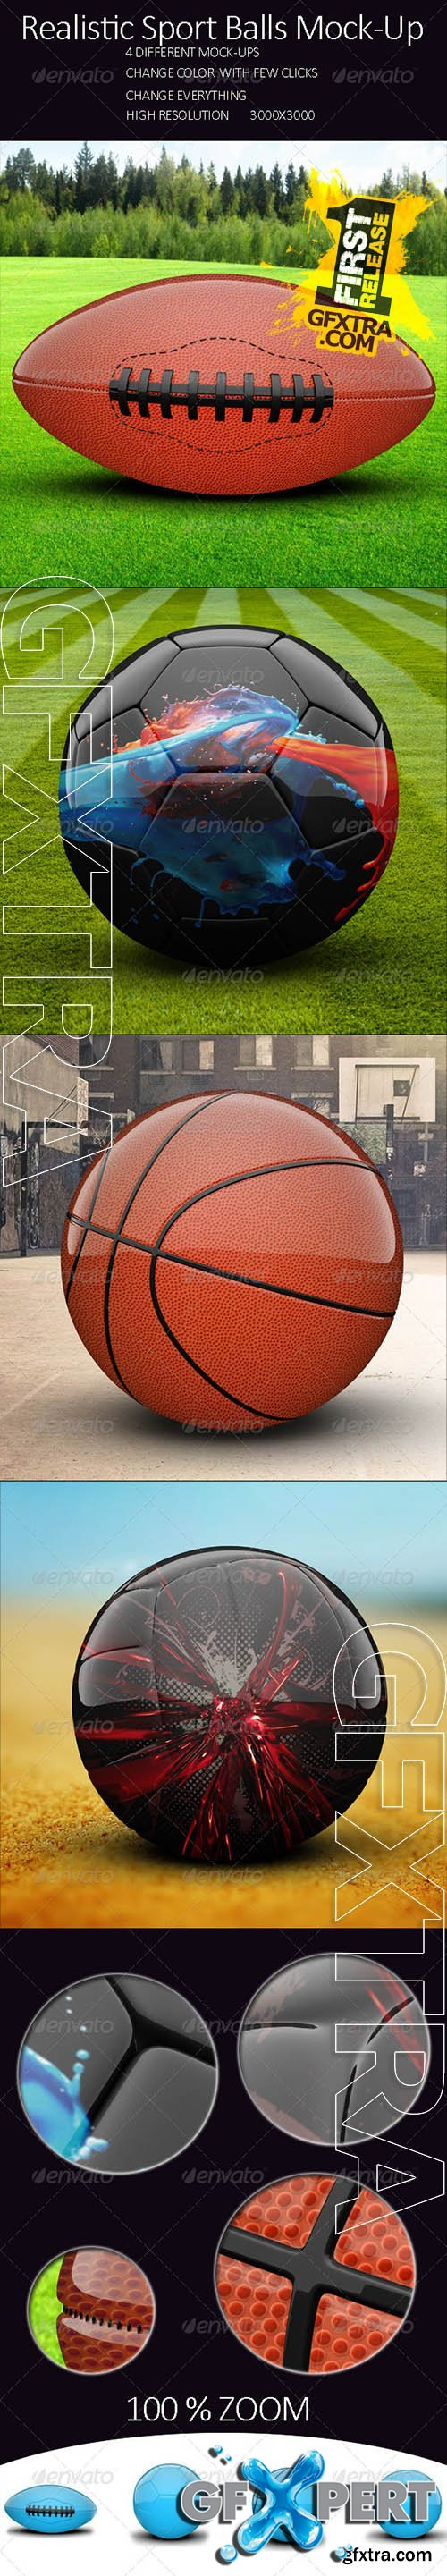 Realistic Sport Balls Mock Up - Graphicriver 8006900